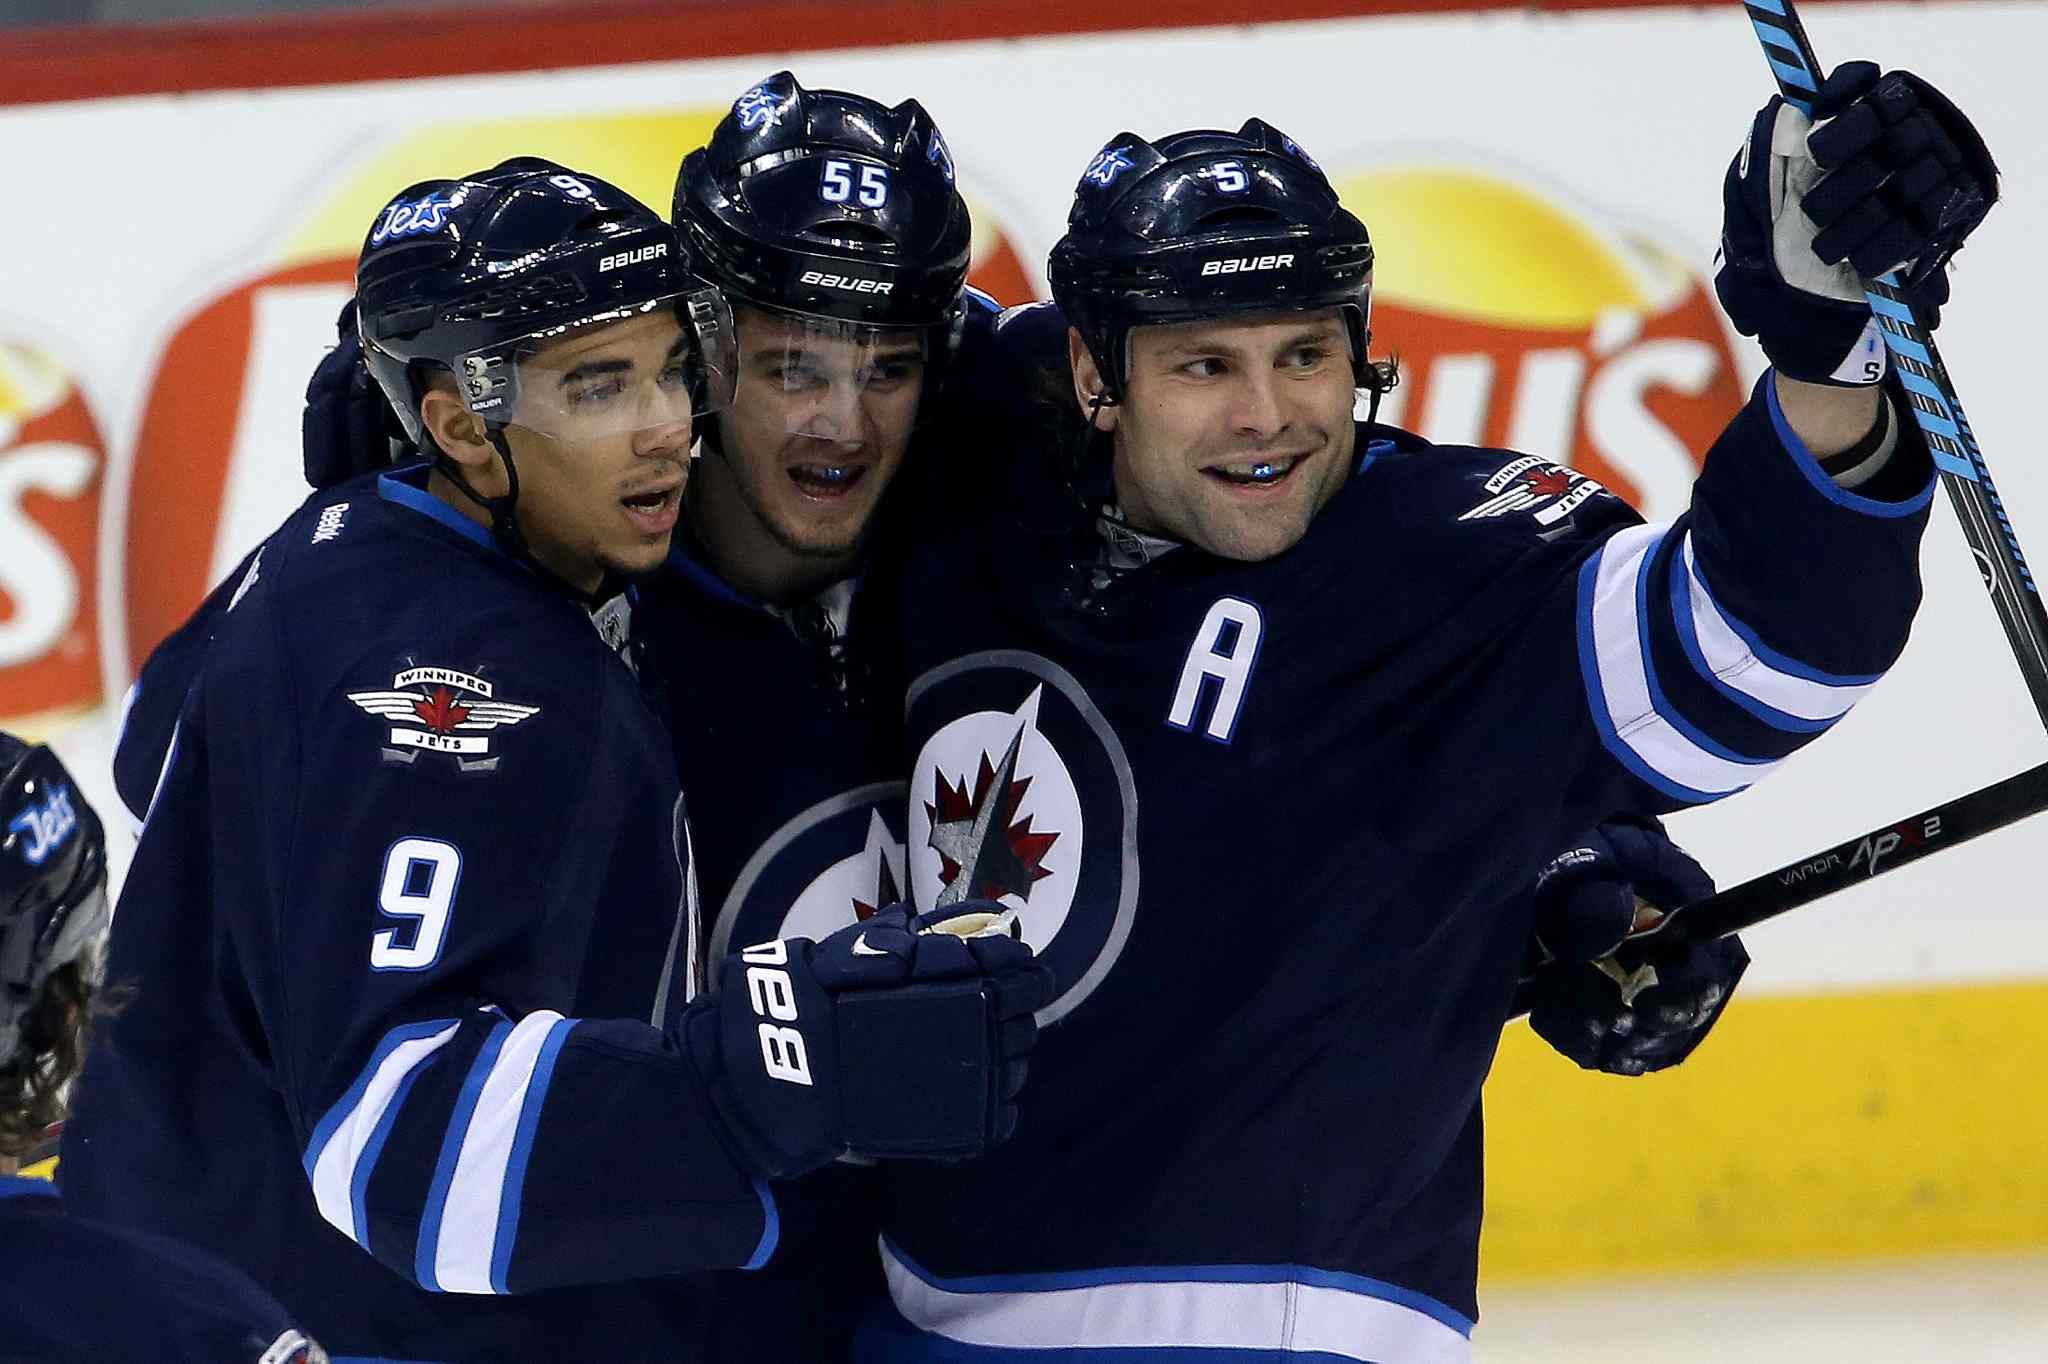 Winnipeg Jets' Evander Kane (9), Mark Scheifele (55) and Mark Stuart (5) celebrate after Scheifele opened the scoring against the Toronto Maple Leafs at MTS Centre in Winnipeg on Saturday. The Jets won in overtime 5-4.